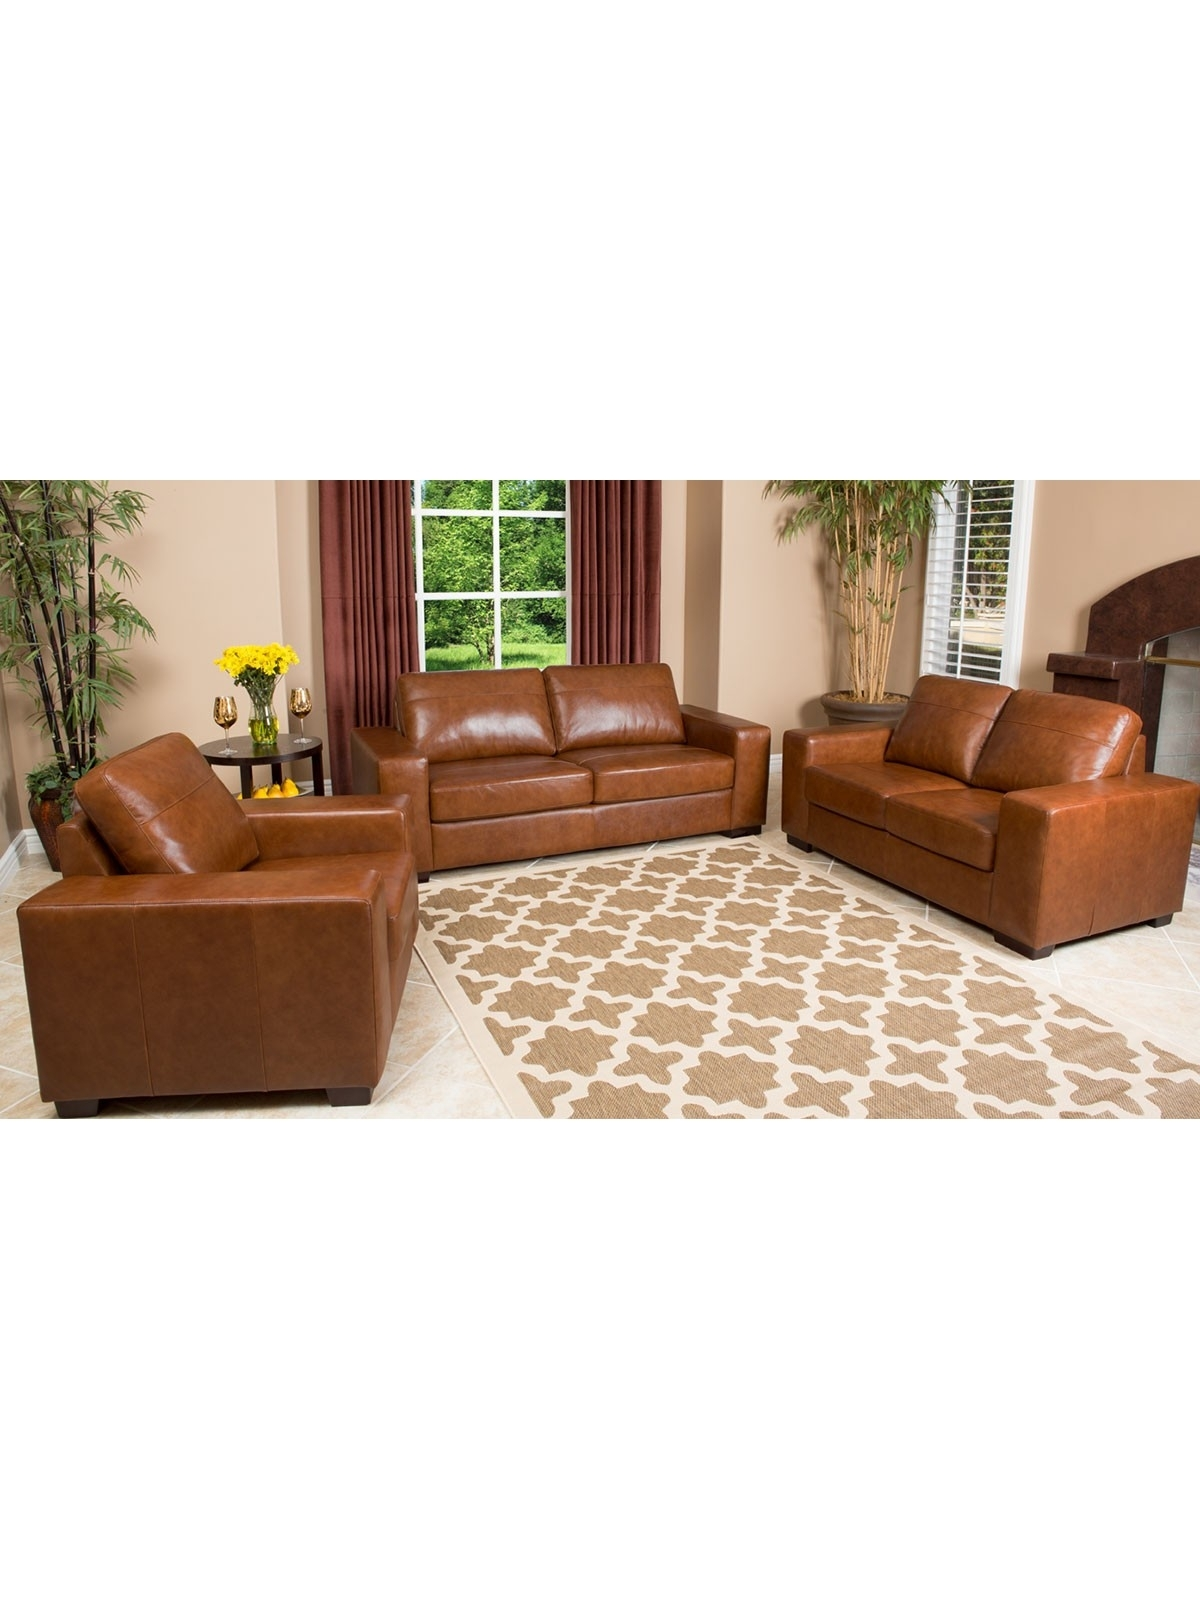 Camel Color Leather Sofa Sectional Couches Colored Coloured Within Camel Colored Sectional Sofas (Image 4 of 10)